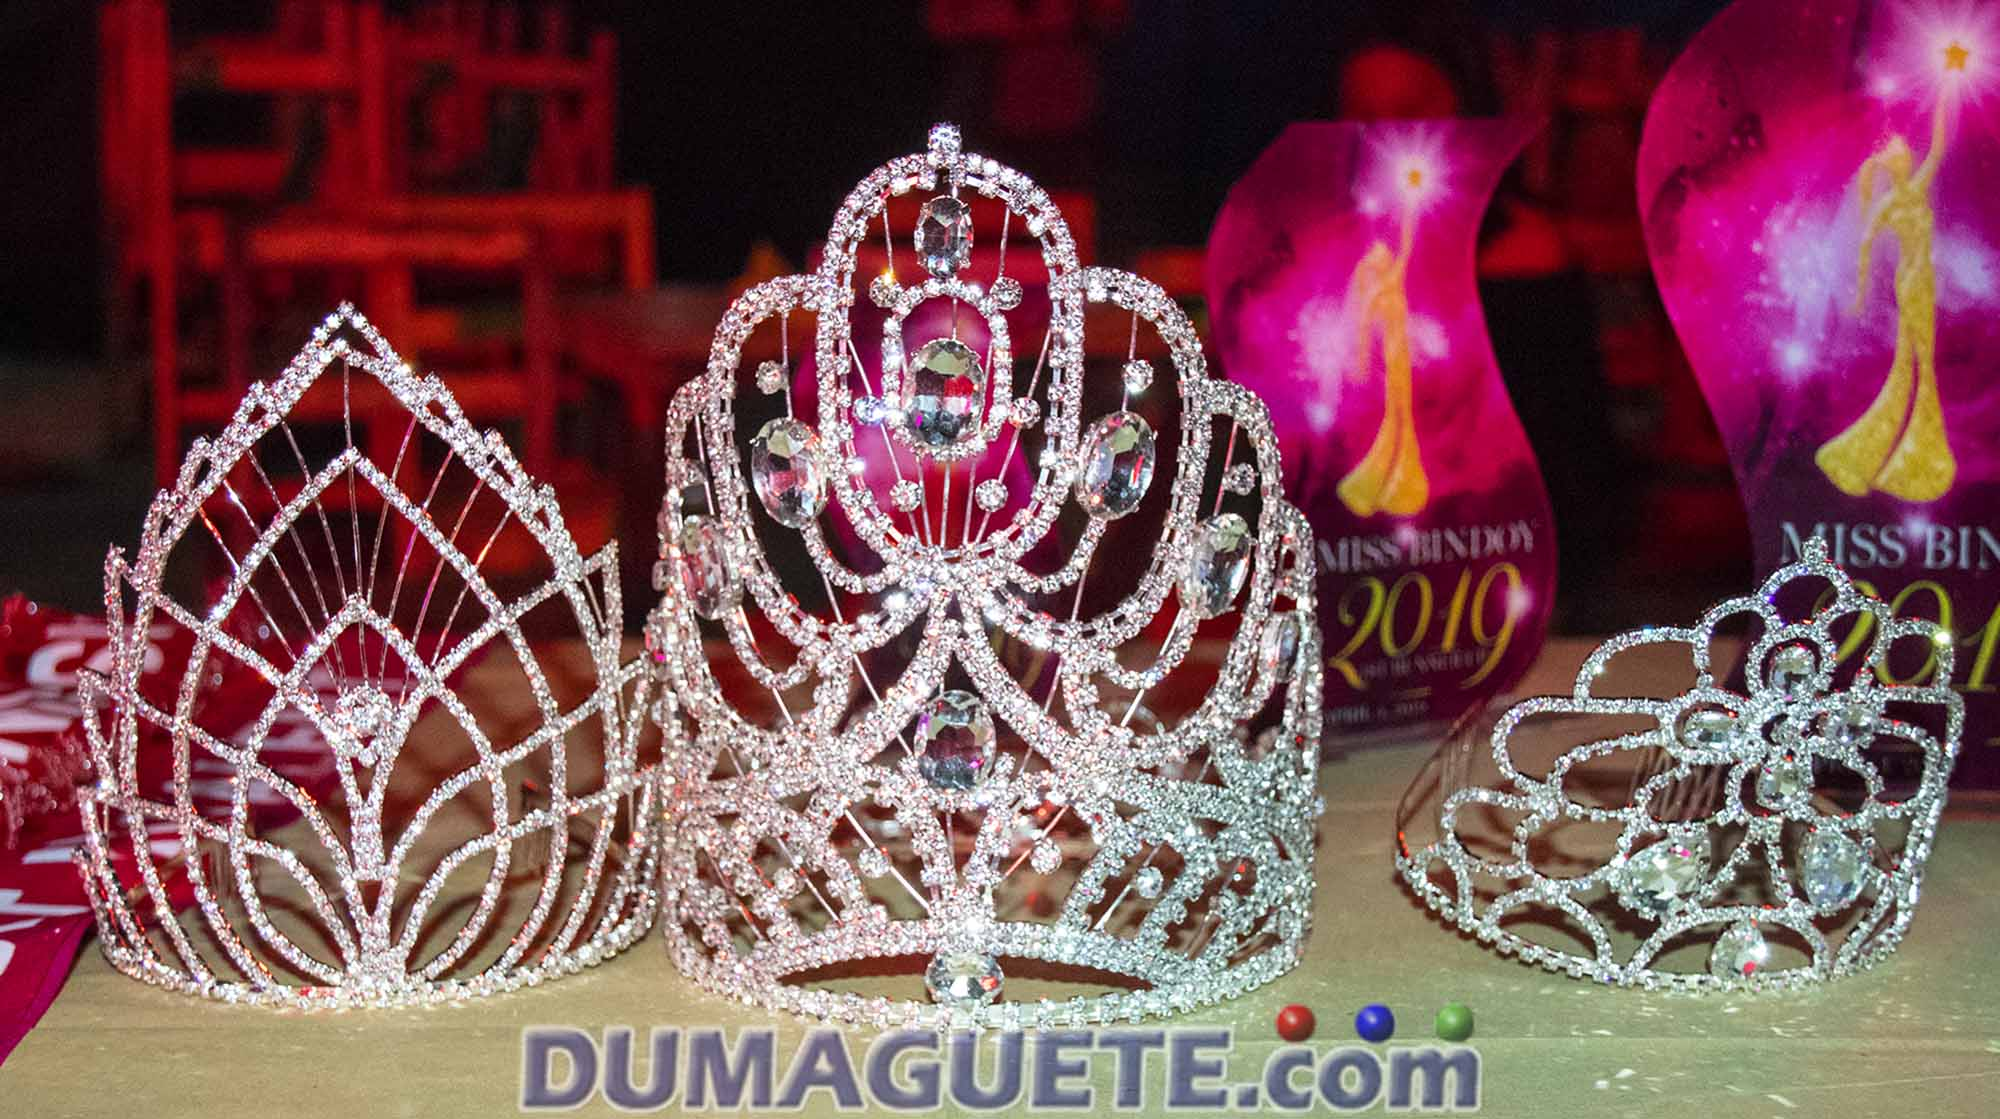 Miss Bindoy 2019 - Queen Crowns